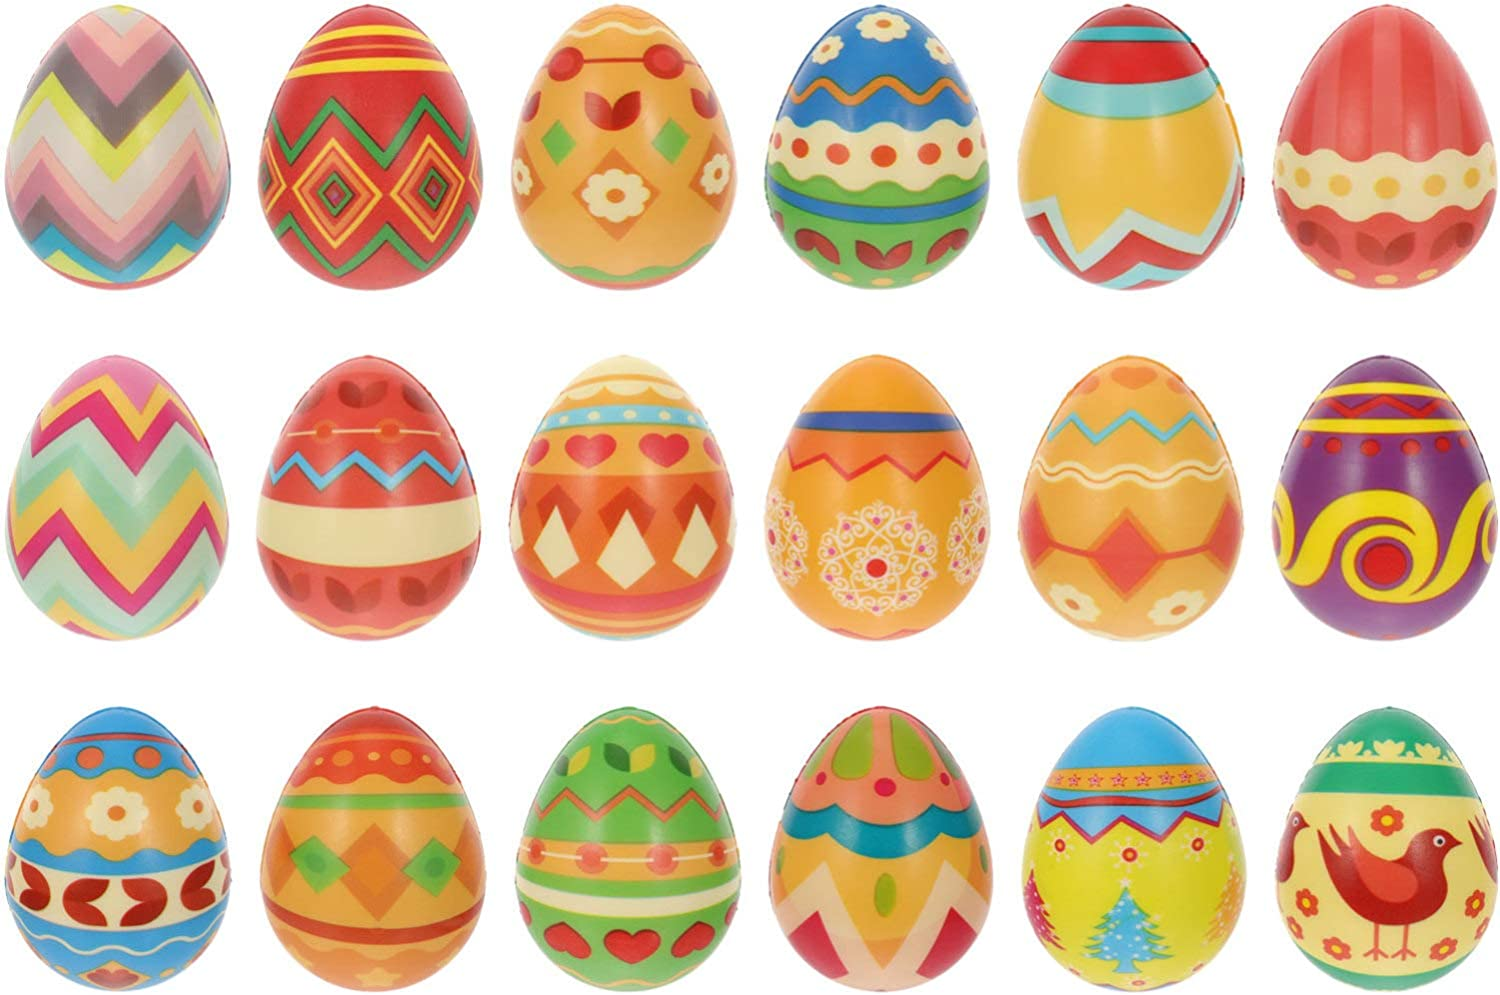 TOYANDONA 18Pcs Easter New Shipping Free Jumbo Limited time trial price Squeeze Toys Slow Rising T Soft Egg